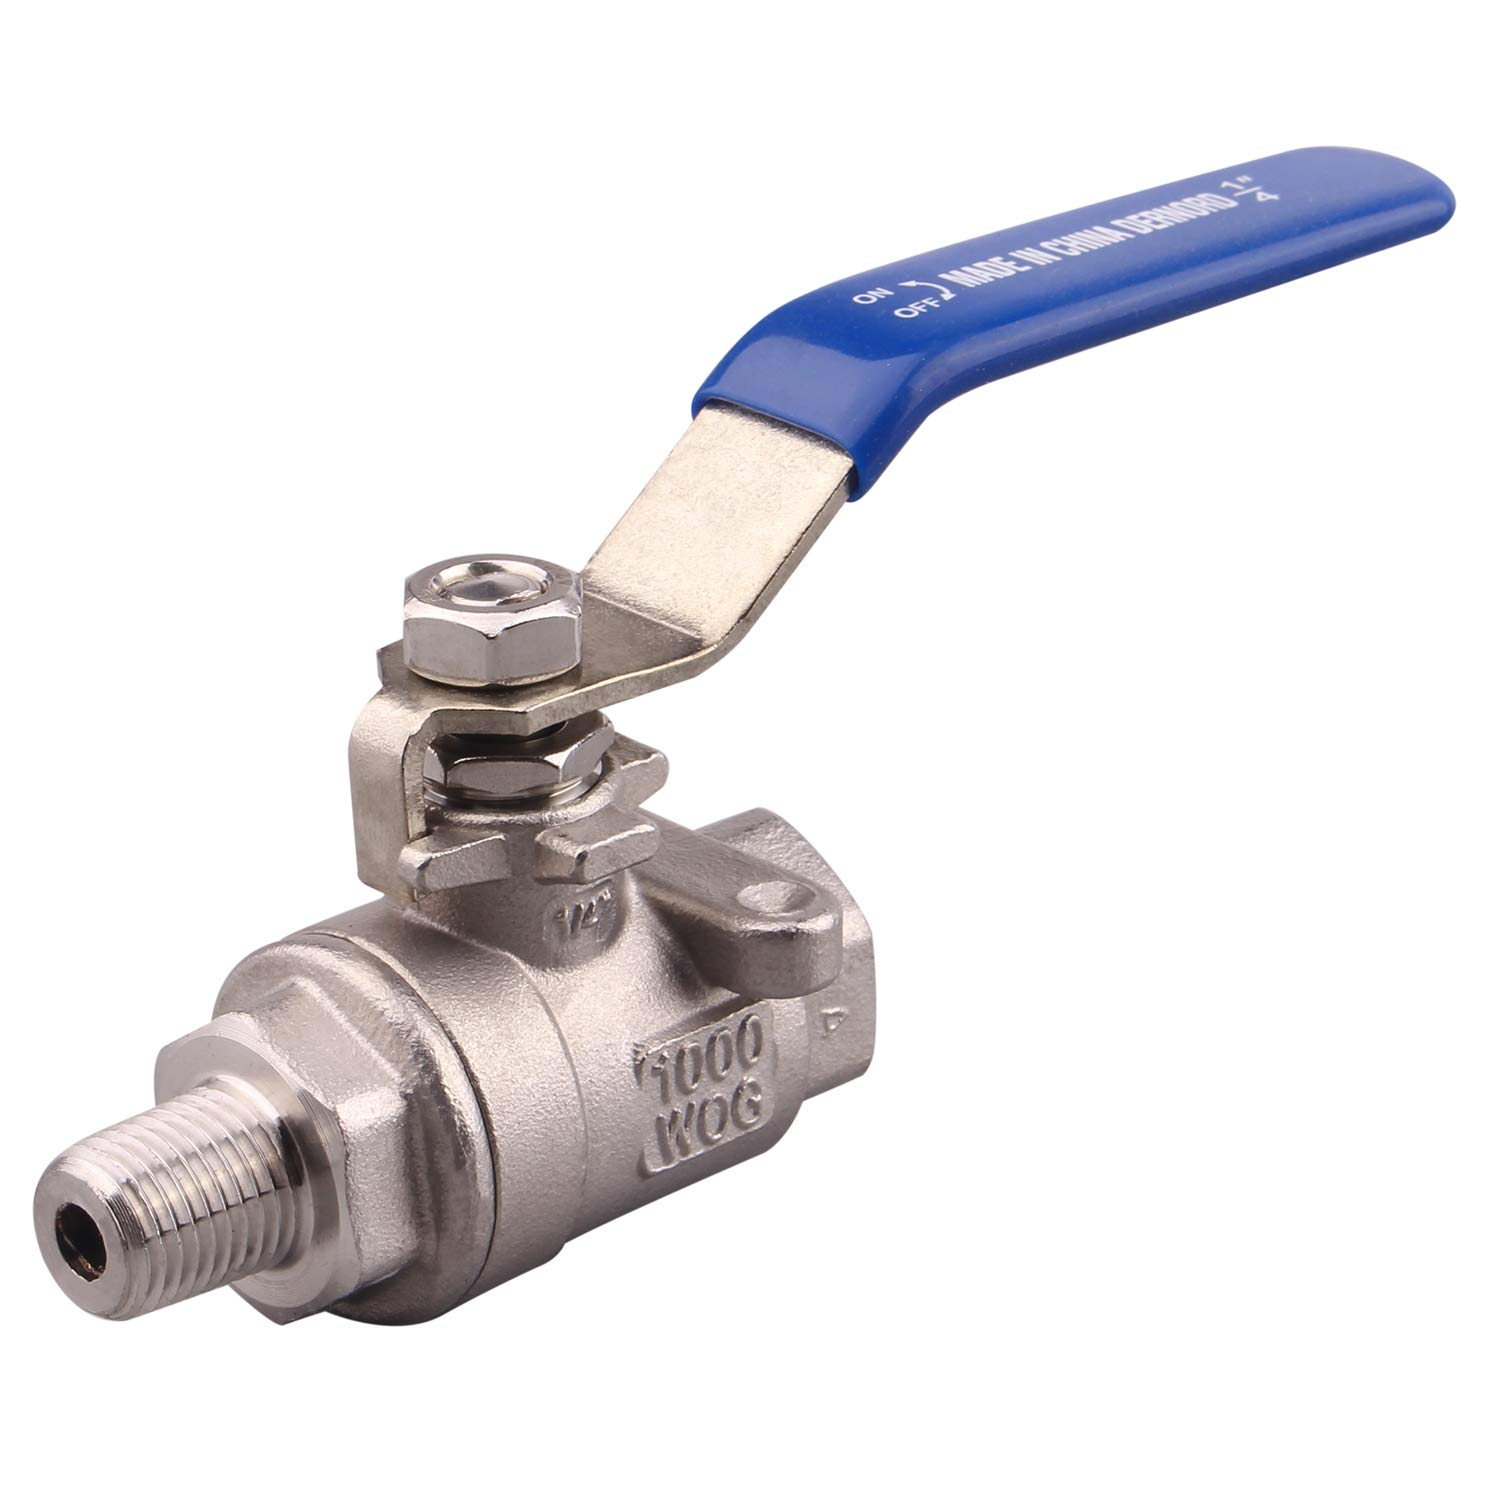 DERNORD Full Port Ball Valve 1/4 Inch - Male x Female Stainless Steel 304 Heavy Duty for Water, Oil, and Gas,1000WOG (1/4 Inch NPT)